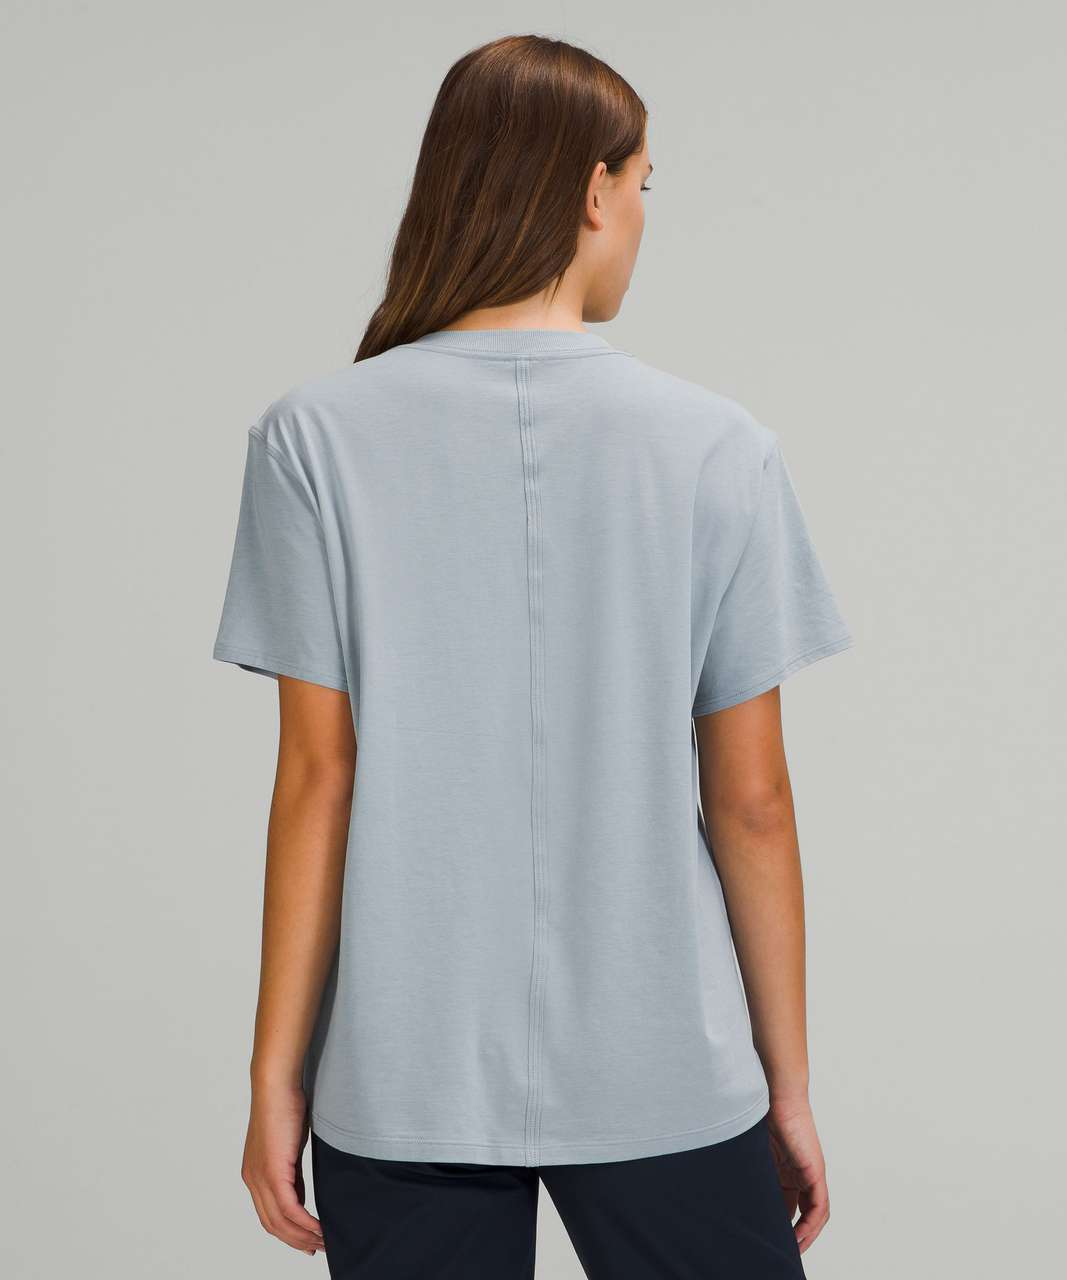 Lululemon All Yours Short Sleeve T-Shirt - Chambray